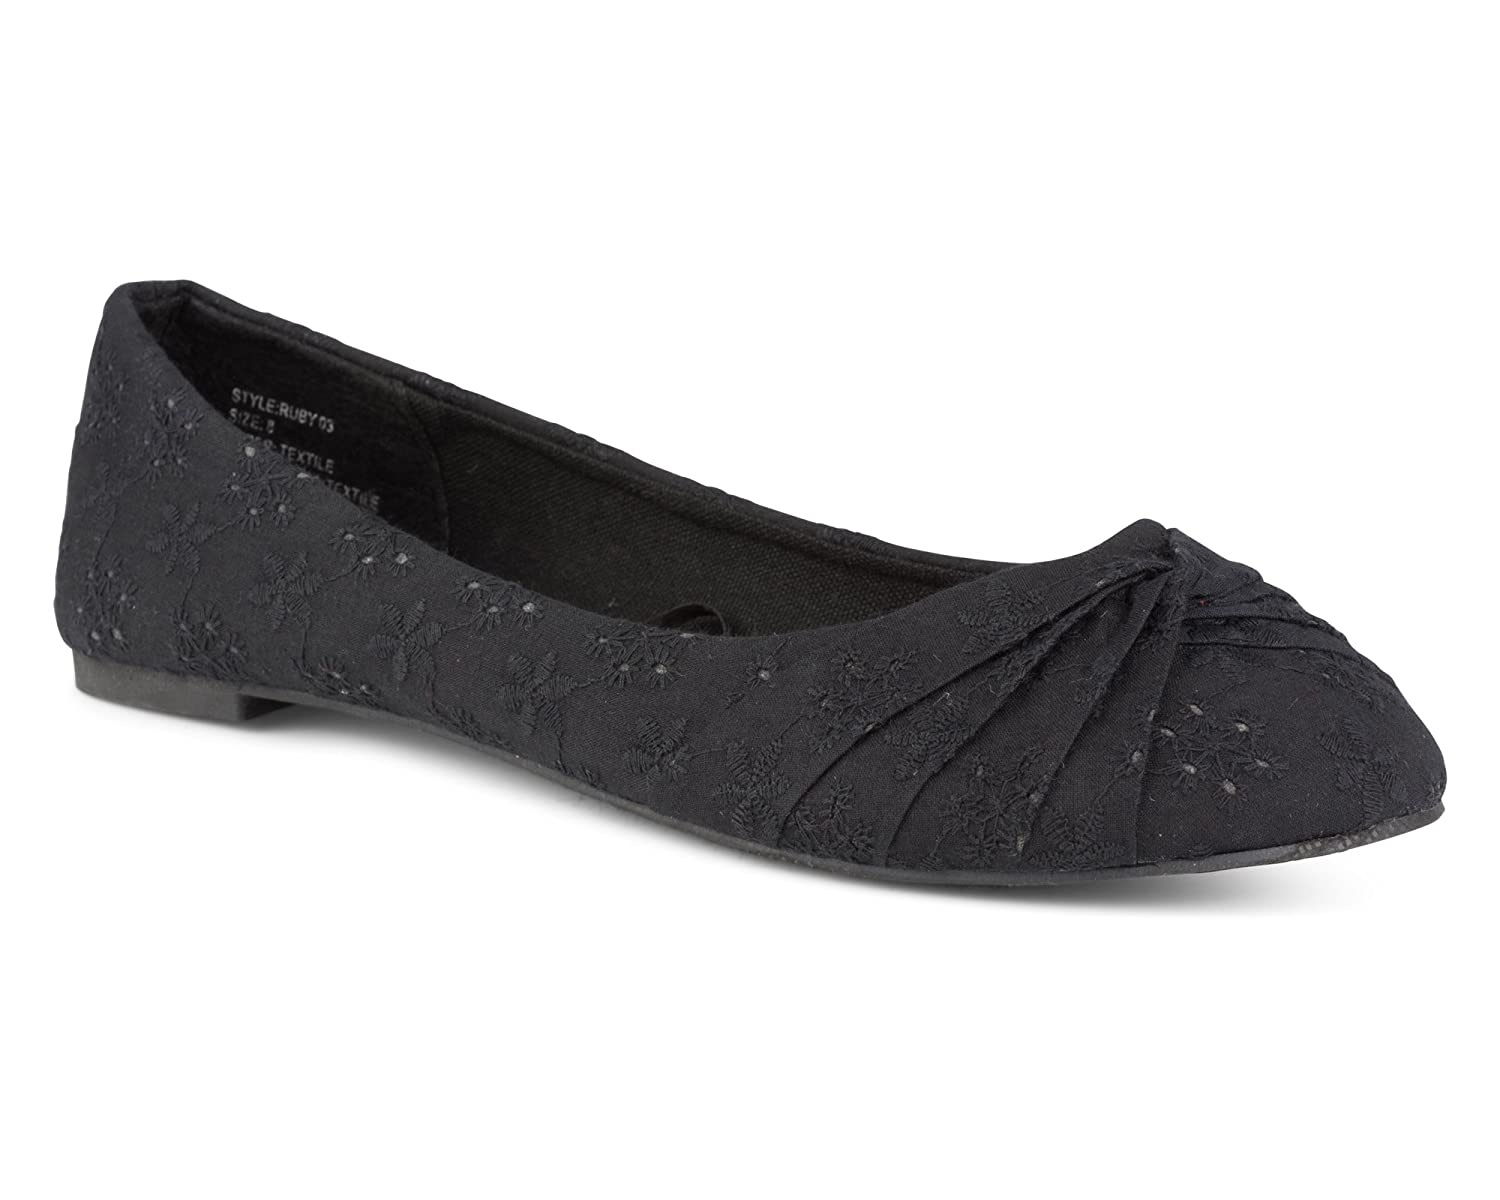 Twisted Women's Ruby Floral Canvas Knotted Toe Ballet Flat